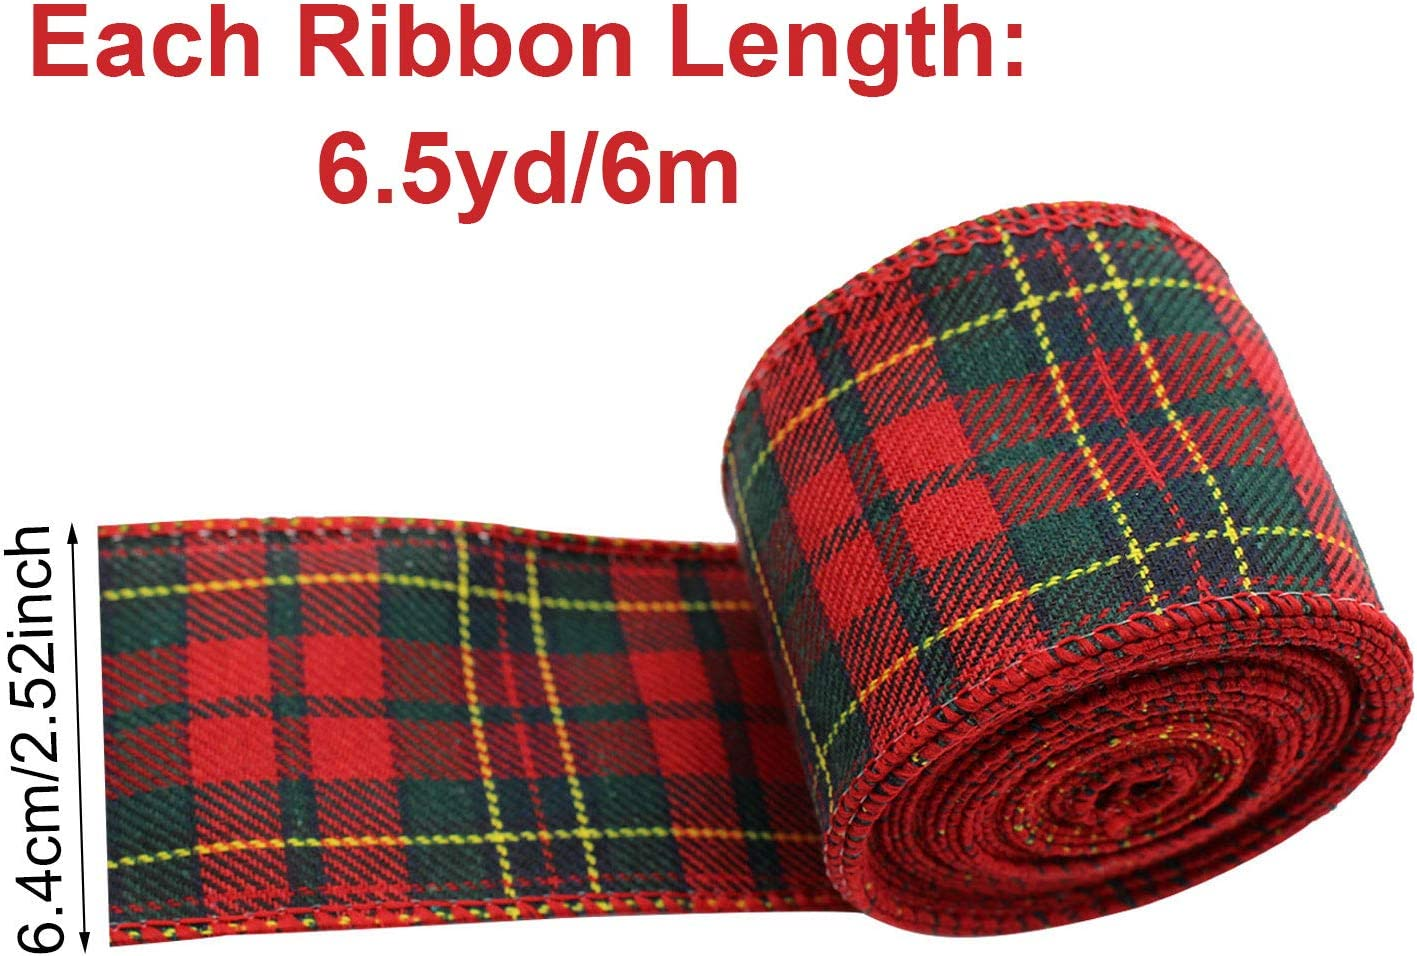 4 Rolls Christmas Wired Edge Ribbons Black White Buffalo Plaid Ribbon 26 Yards 2.5 Inches Black Red Plaid Ribbon Red Green Plaid Ribbon Burlap Craft Ribbon for Xmas Decor DIY Gift Wrapping